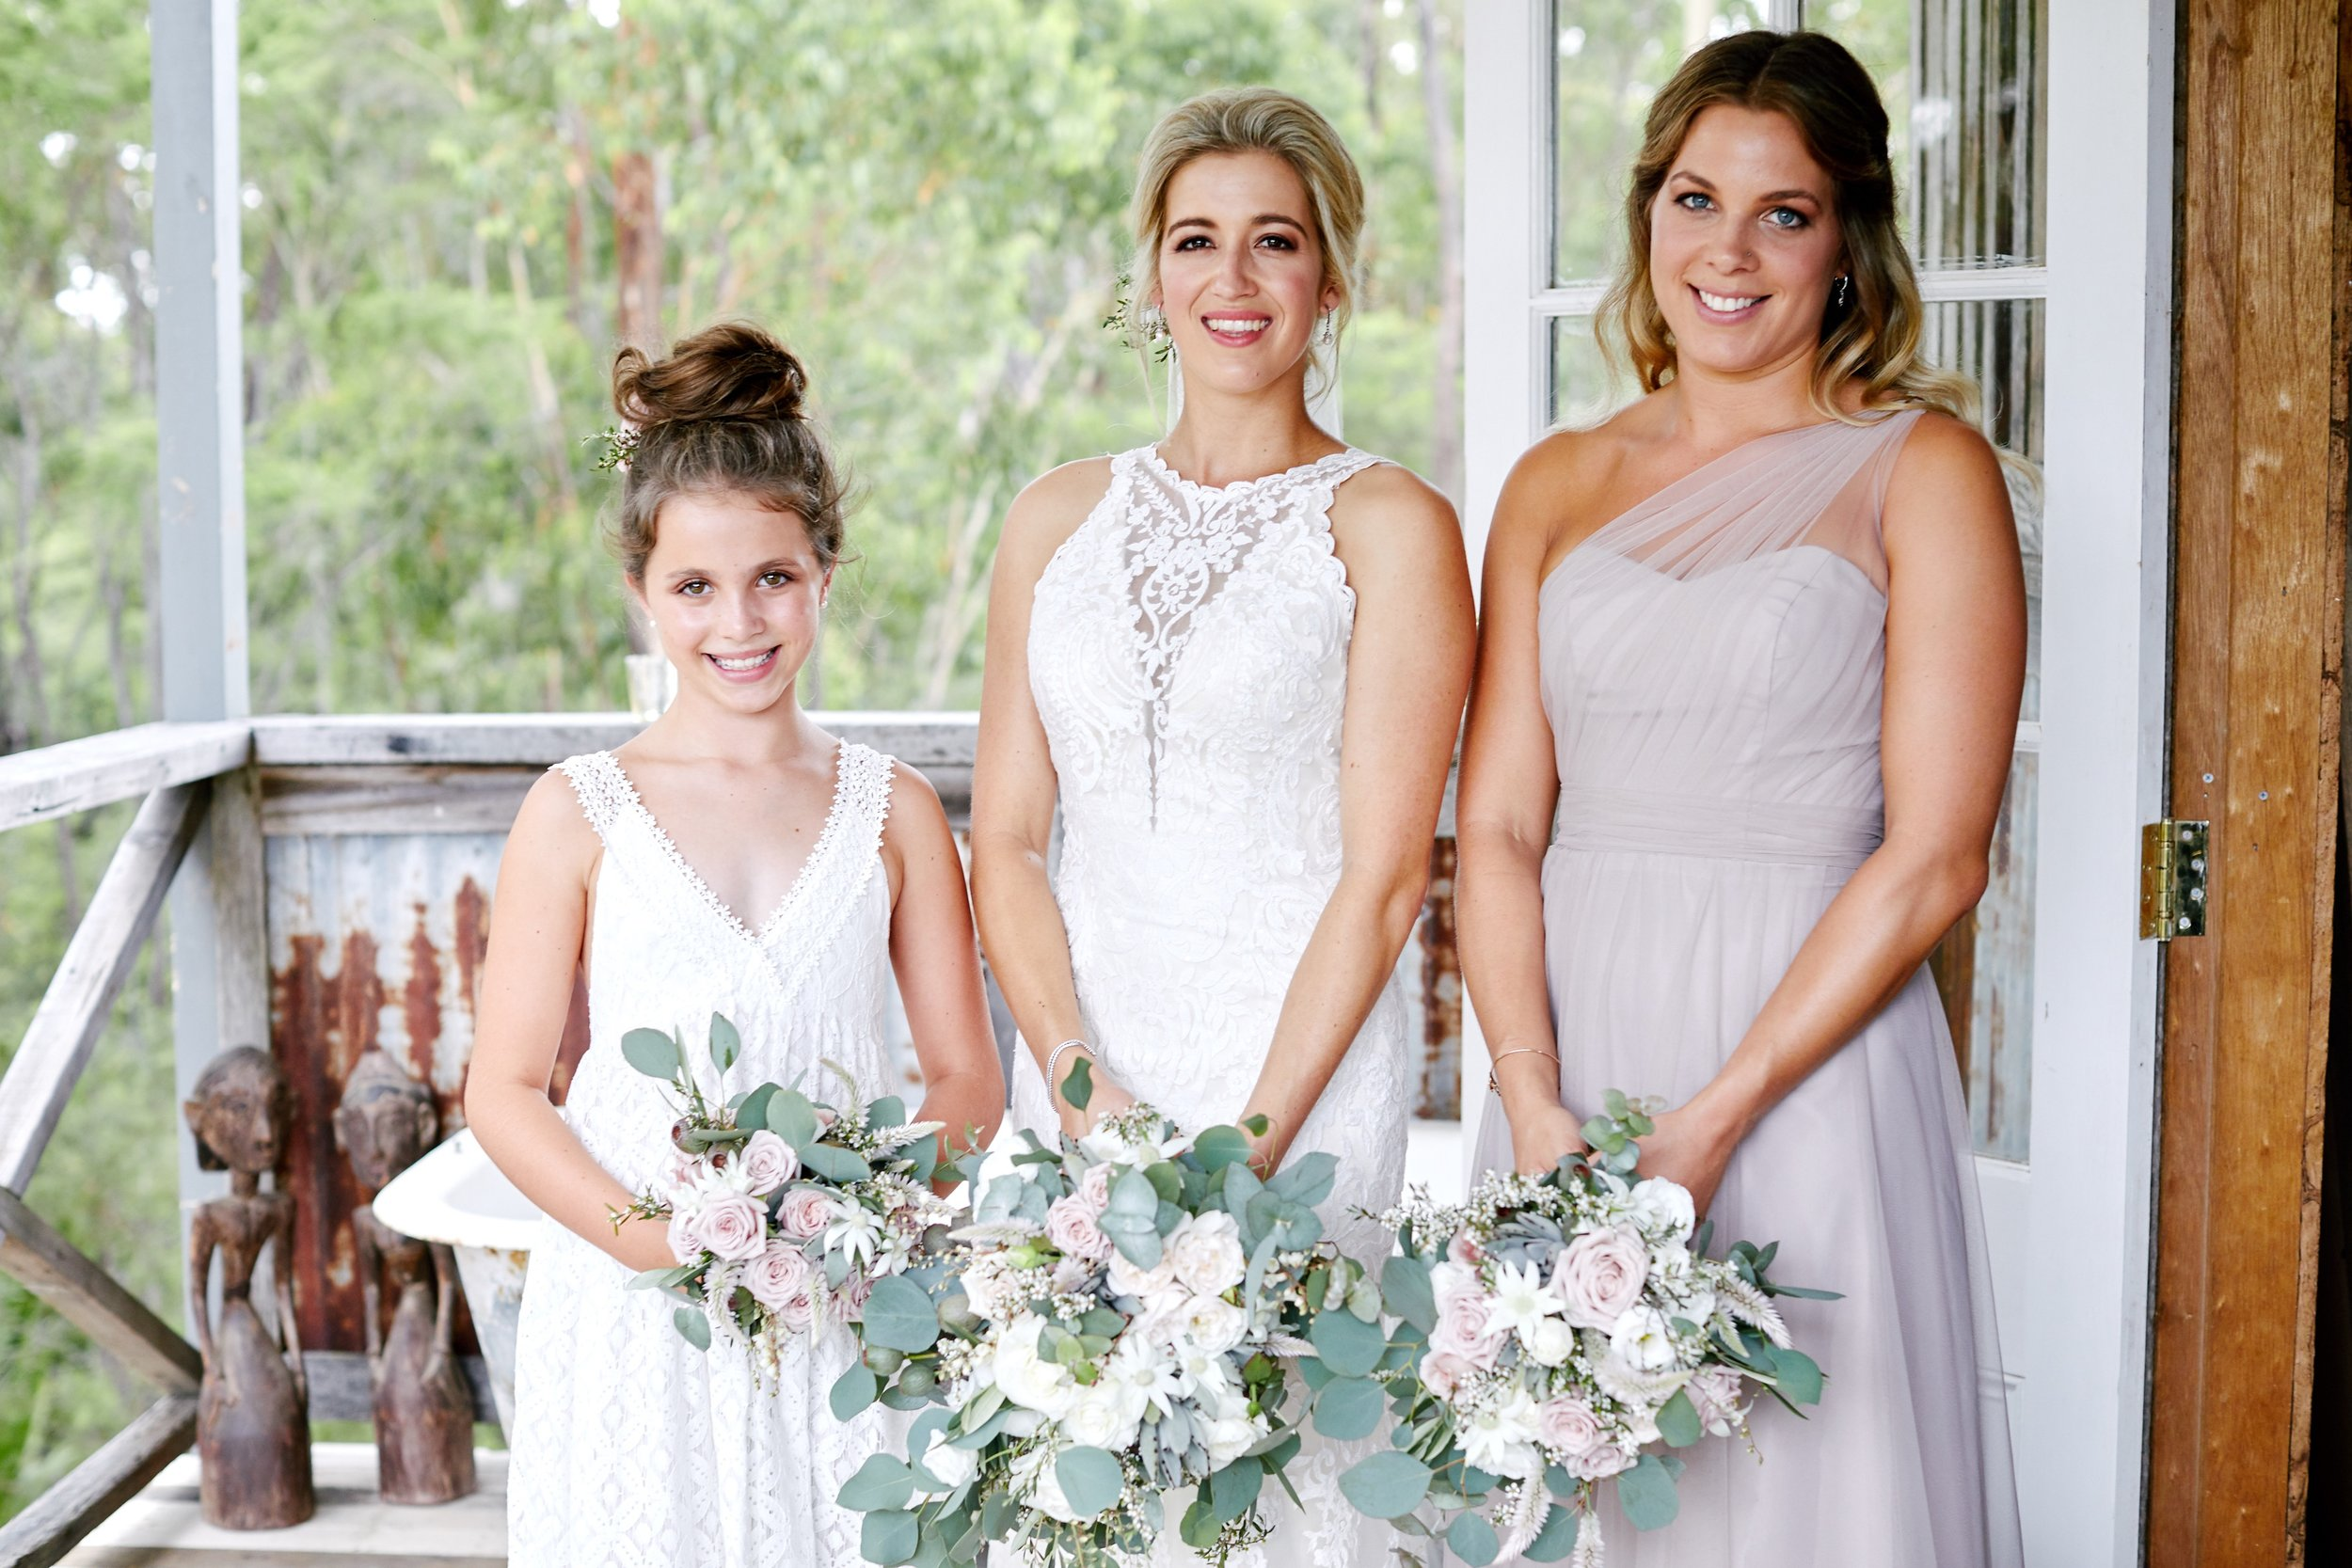 Beautiful bride before her wedding looking over one shoulder with her veil and bridal pink and white bouquet of flowers. Central Coast NSW wedding venue.